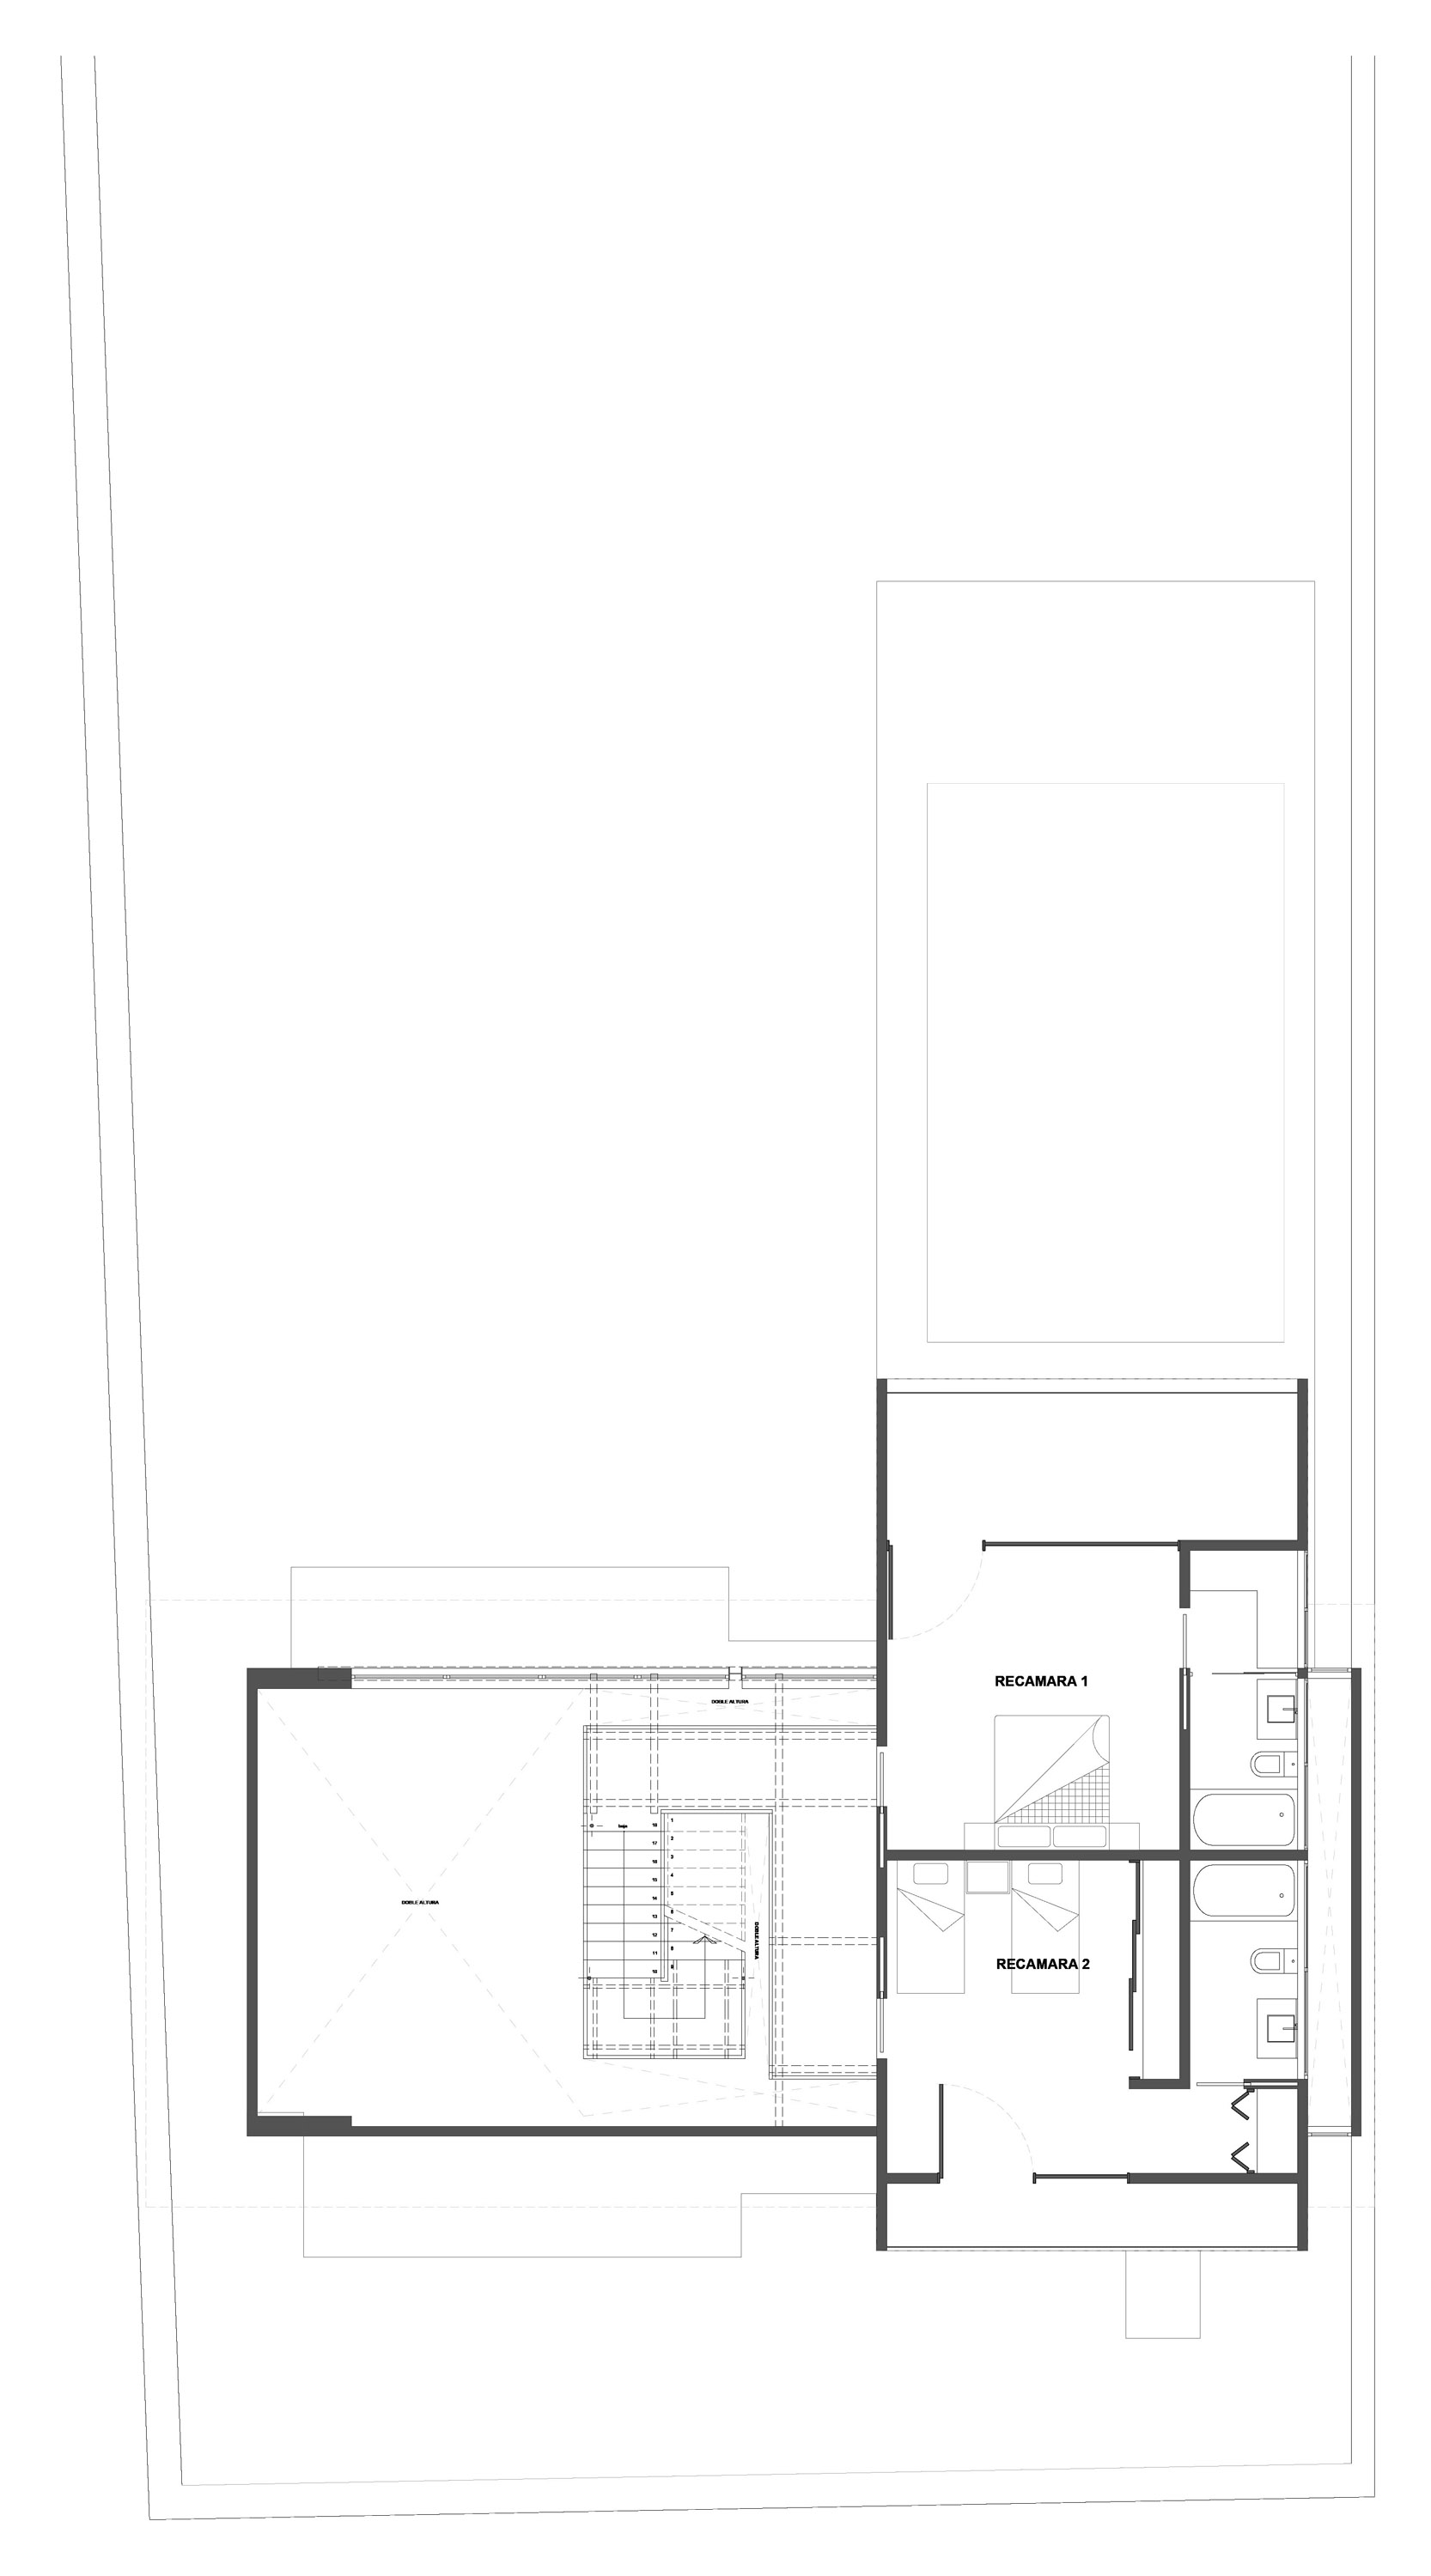 Second Floor Plan, Weekend Retreat in Cuernavaca, Mexico